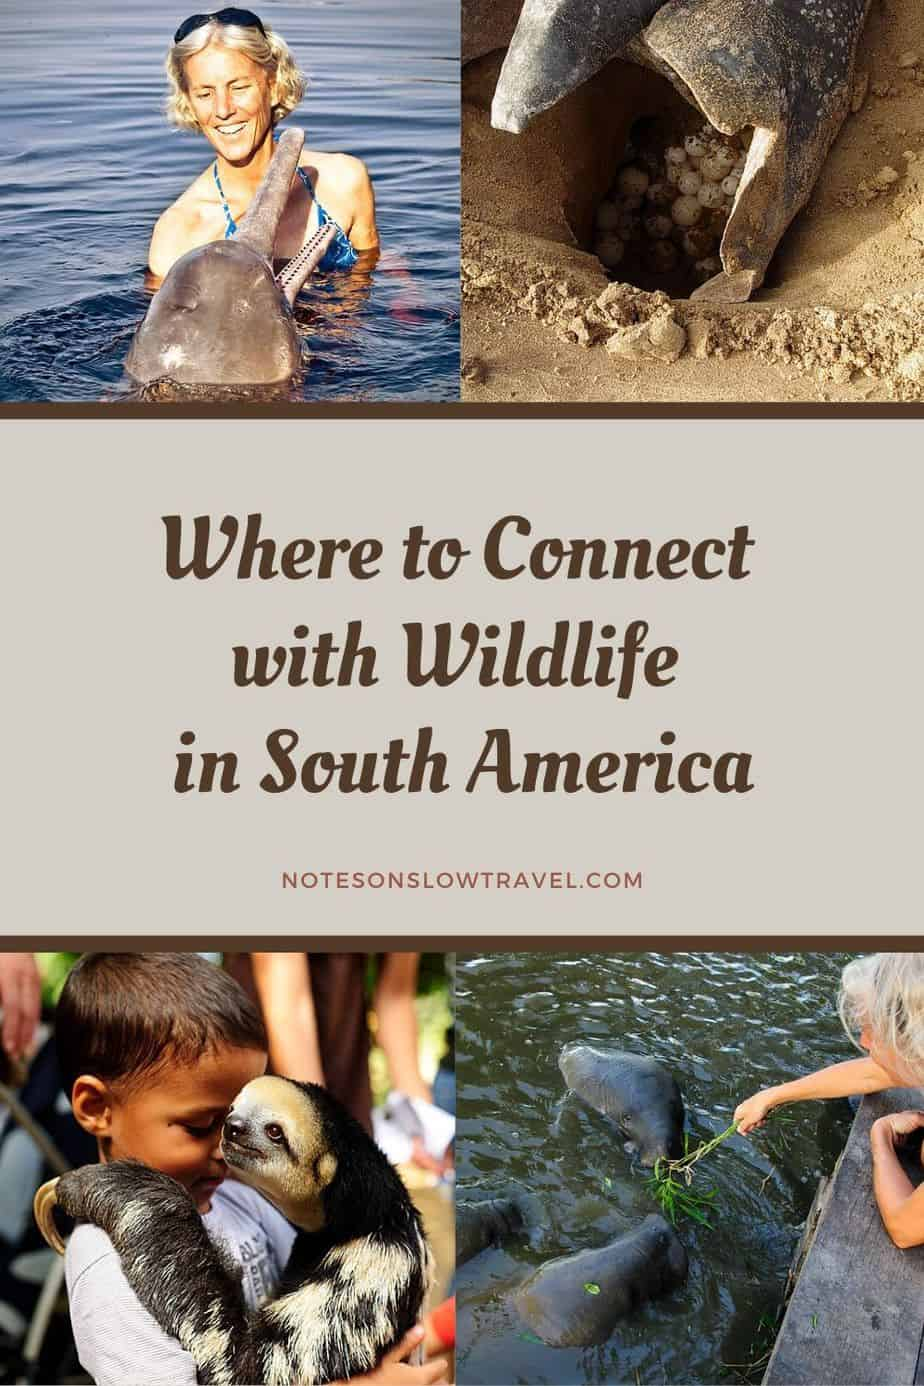 Wildlife in South America